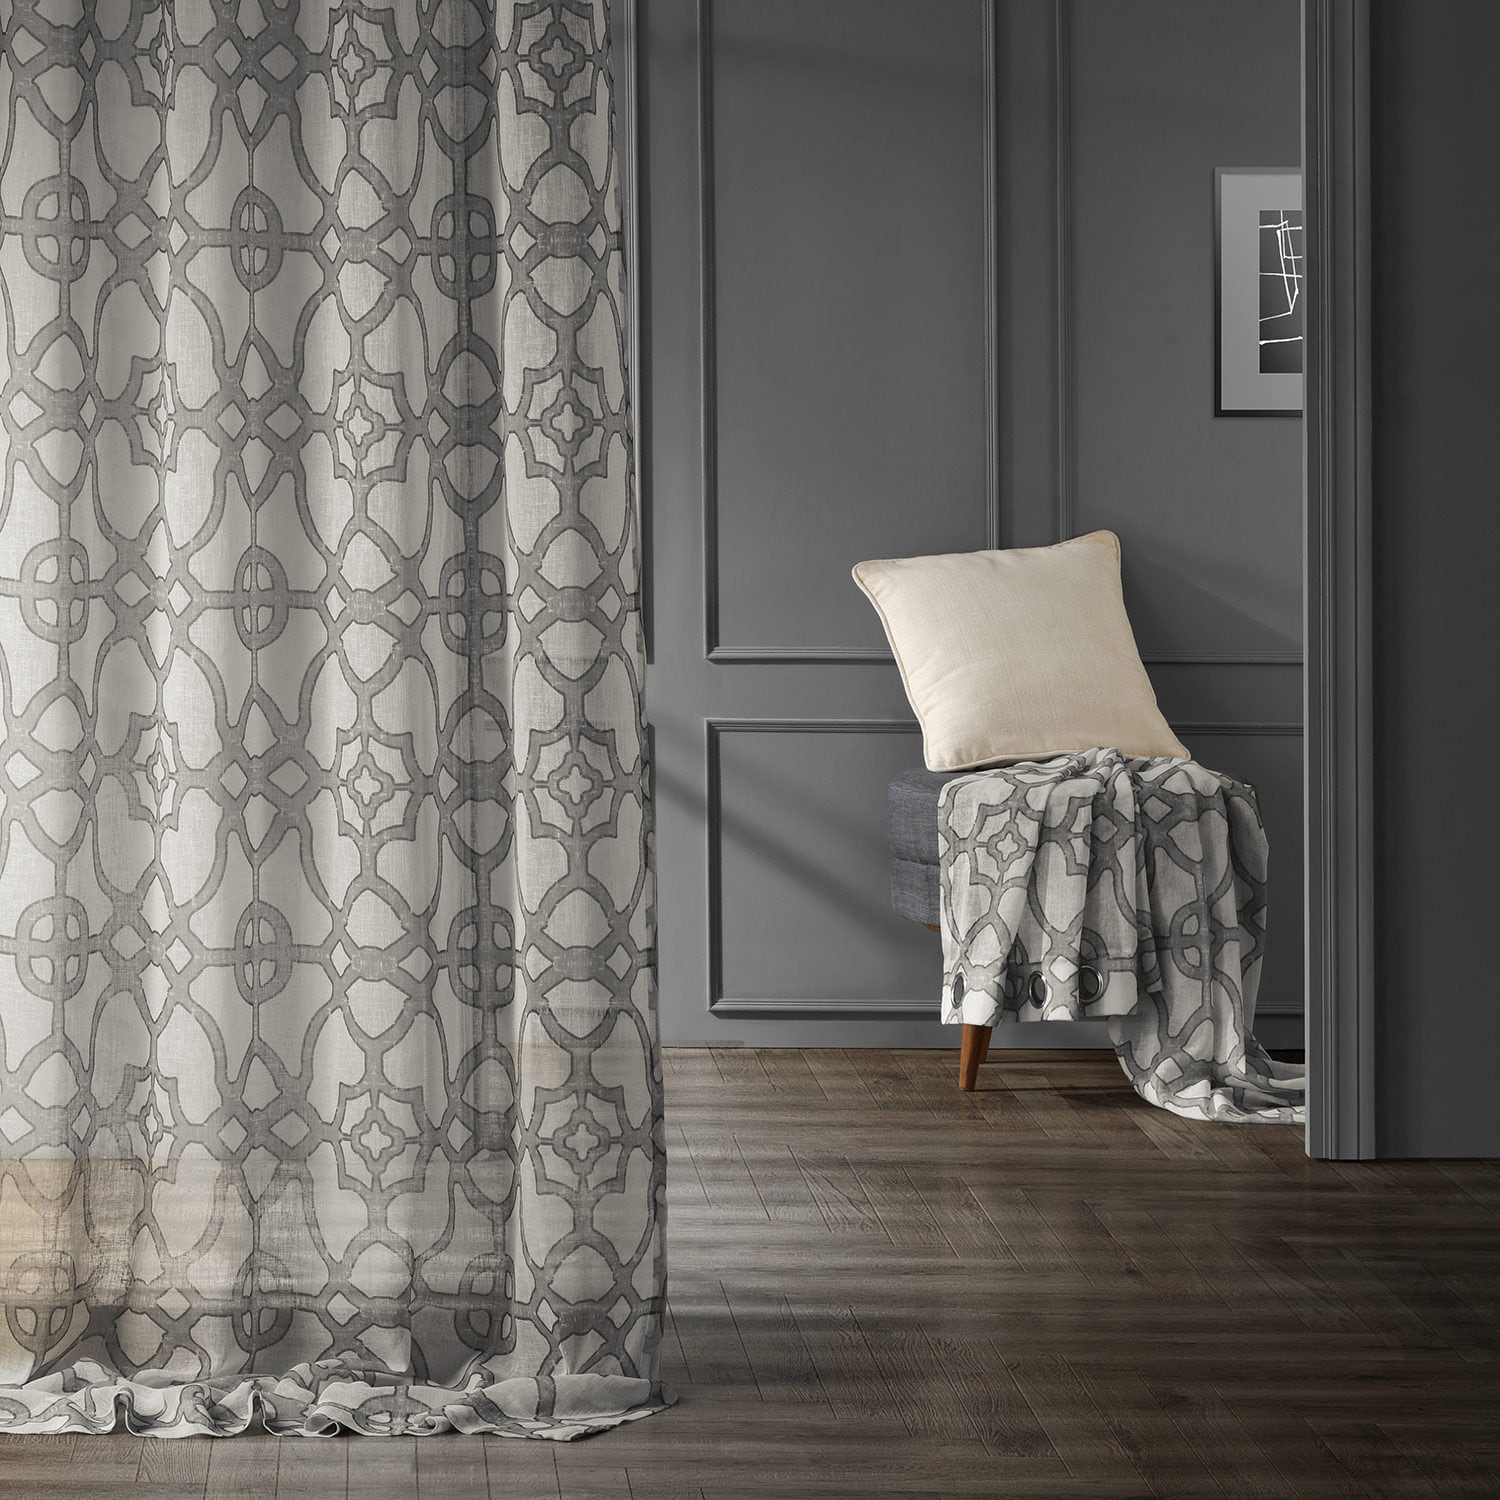 SeaGlass Grey Grommet Printed Faux Linen Sheer Curtain